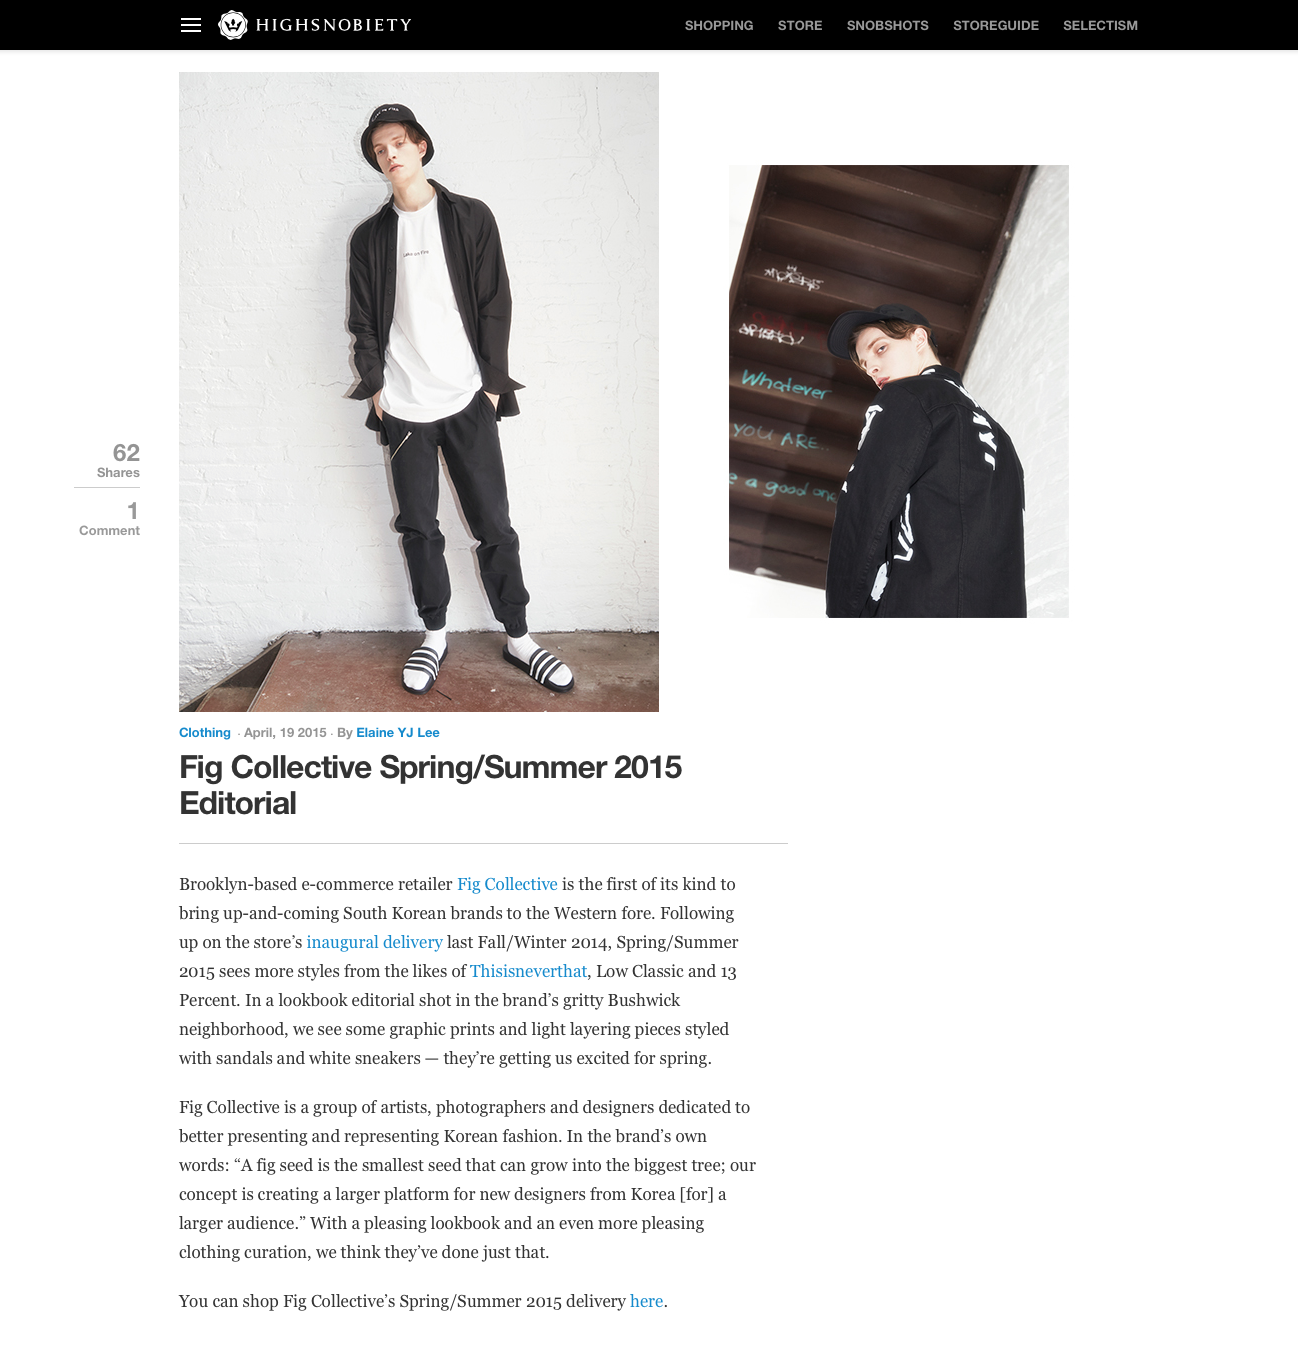 http://www.highsnobiety.com/2015/04/19/fig-collective-springsummer-2015-editorial/